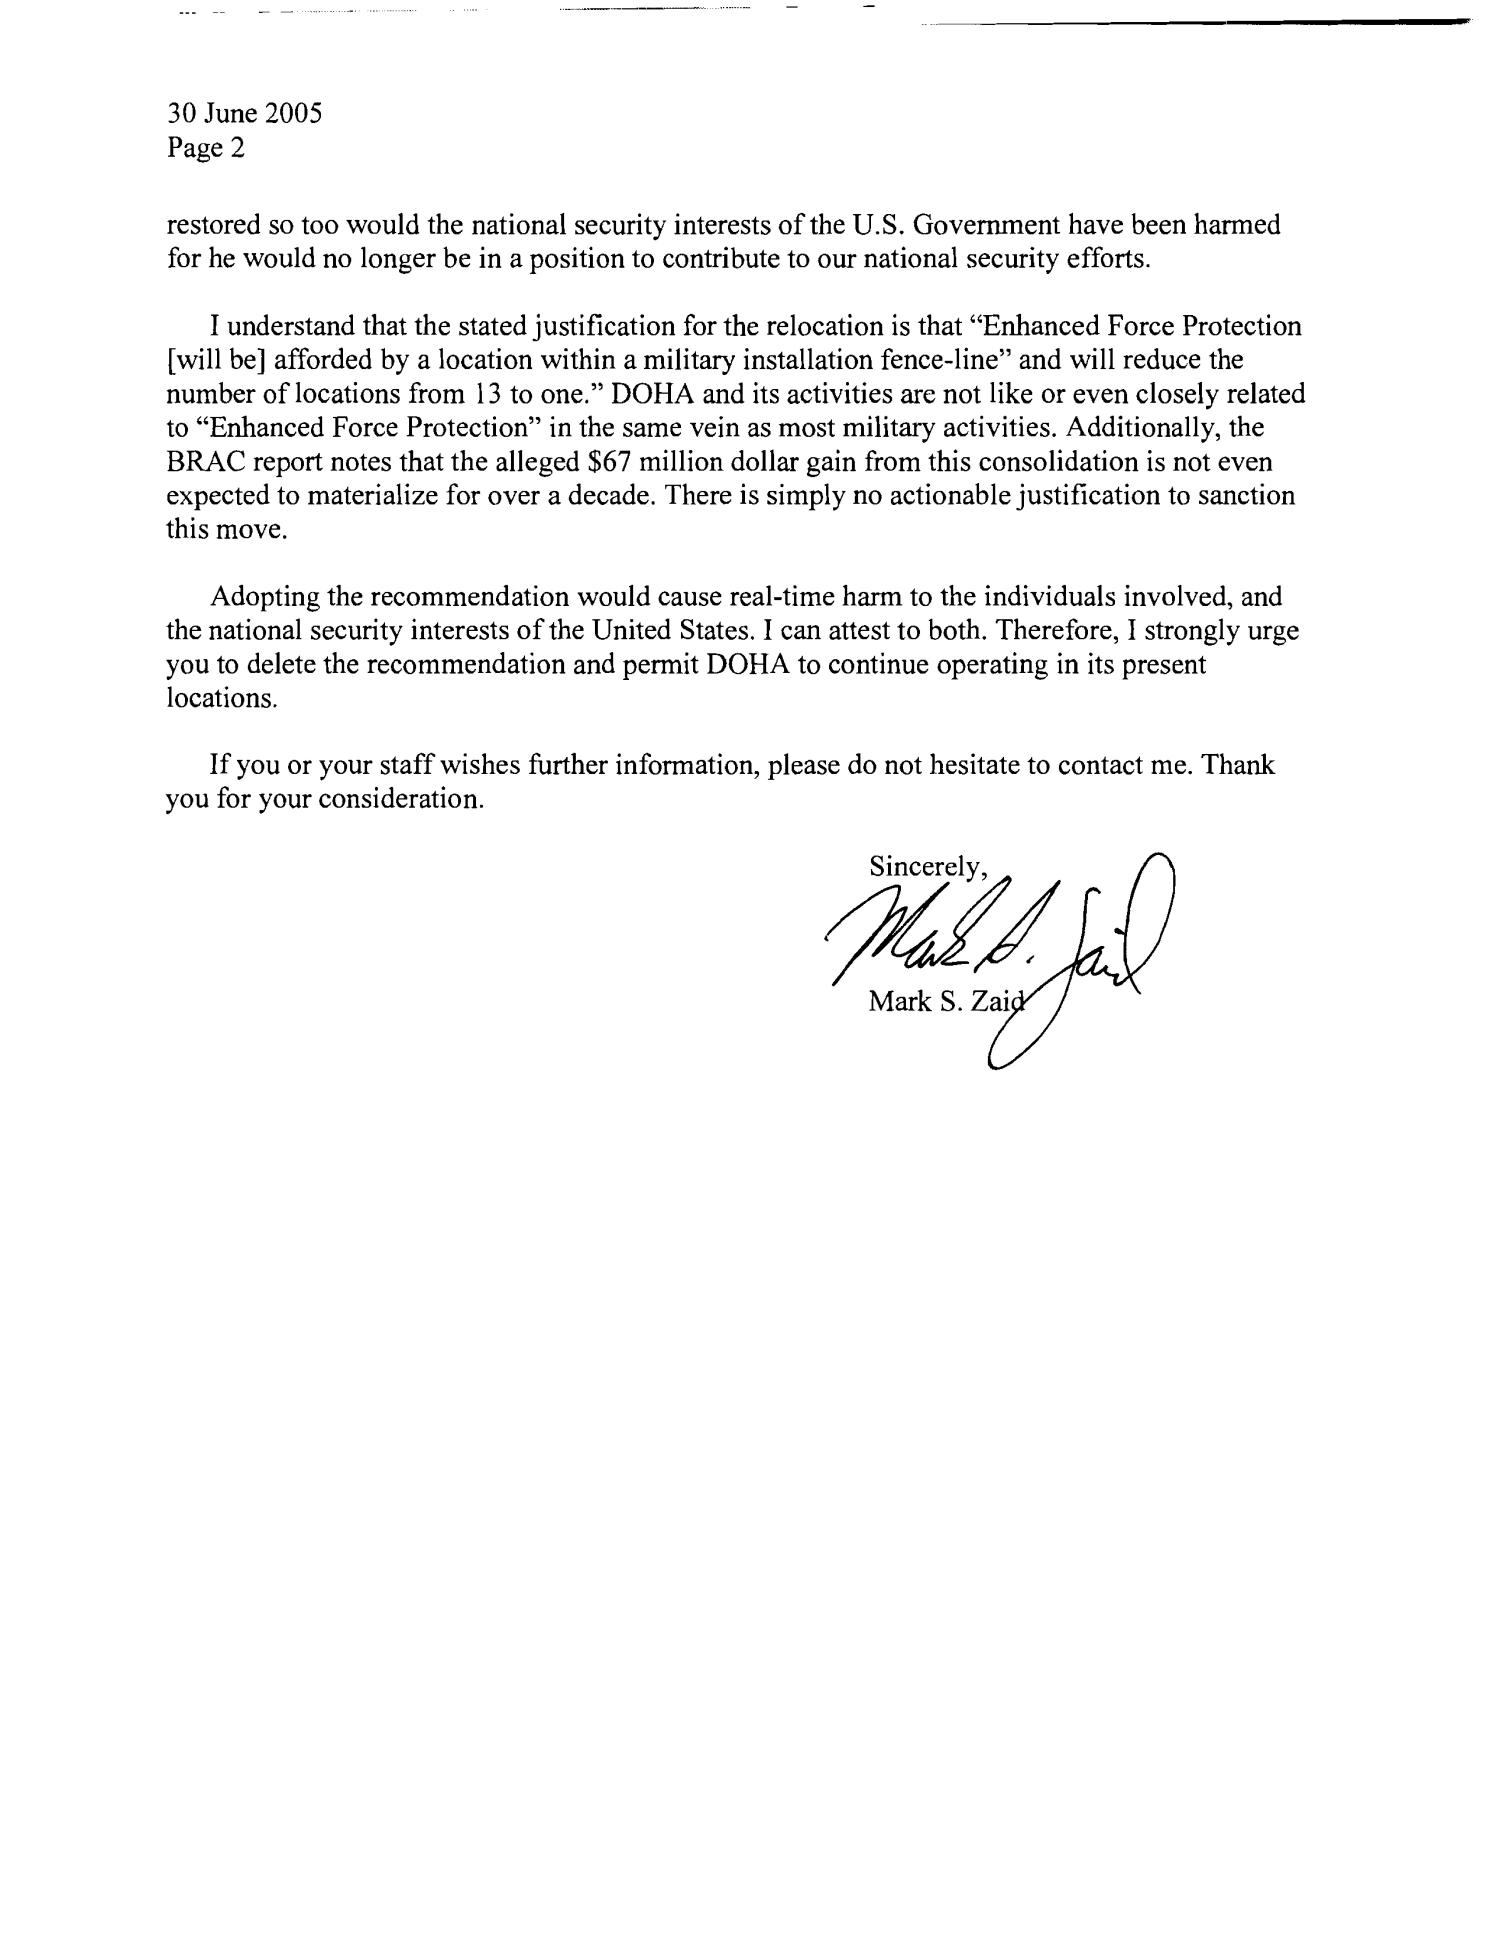 Letter from Mark S. Zaid in support of DOHA                                                                                                      [Sequence #]: 2 of 2